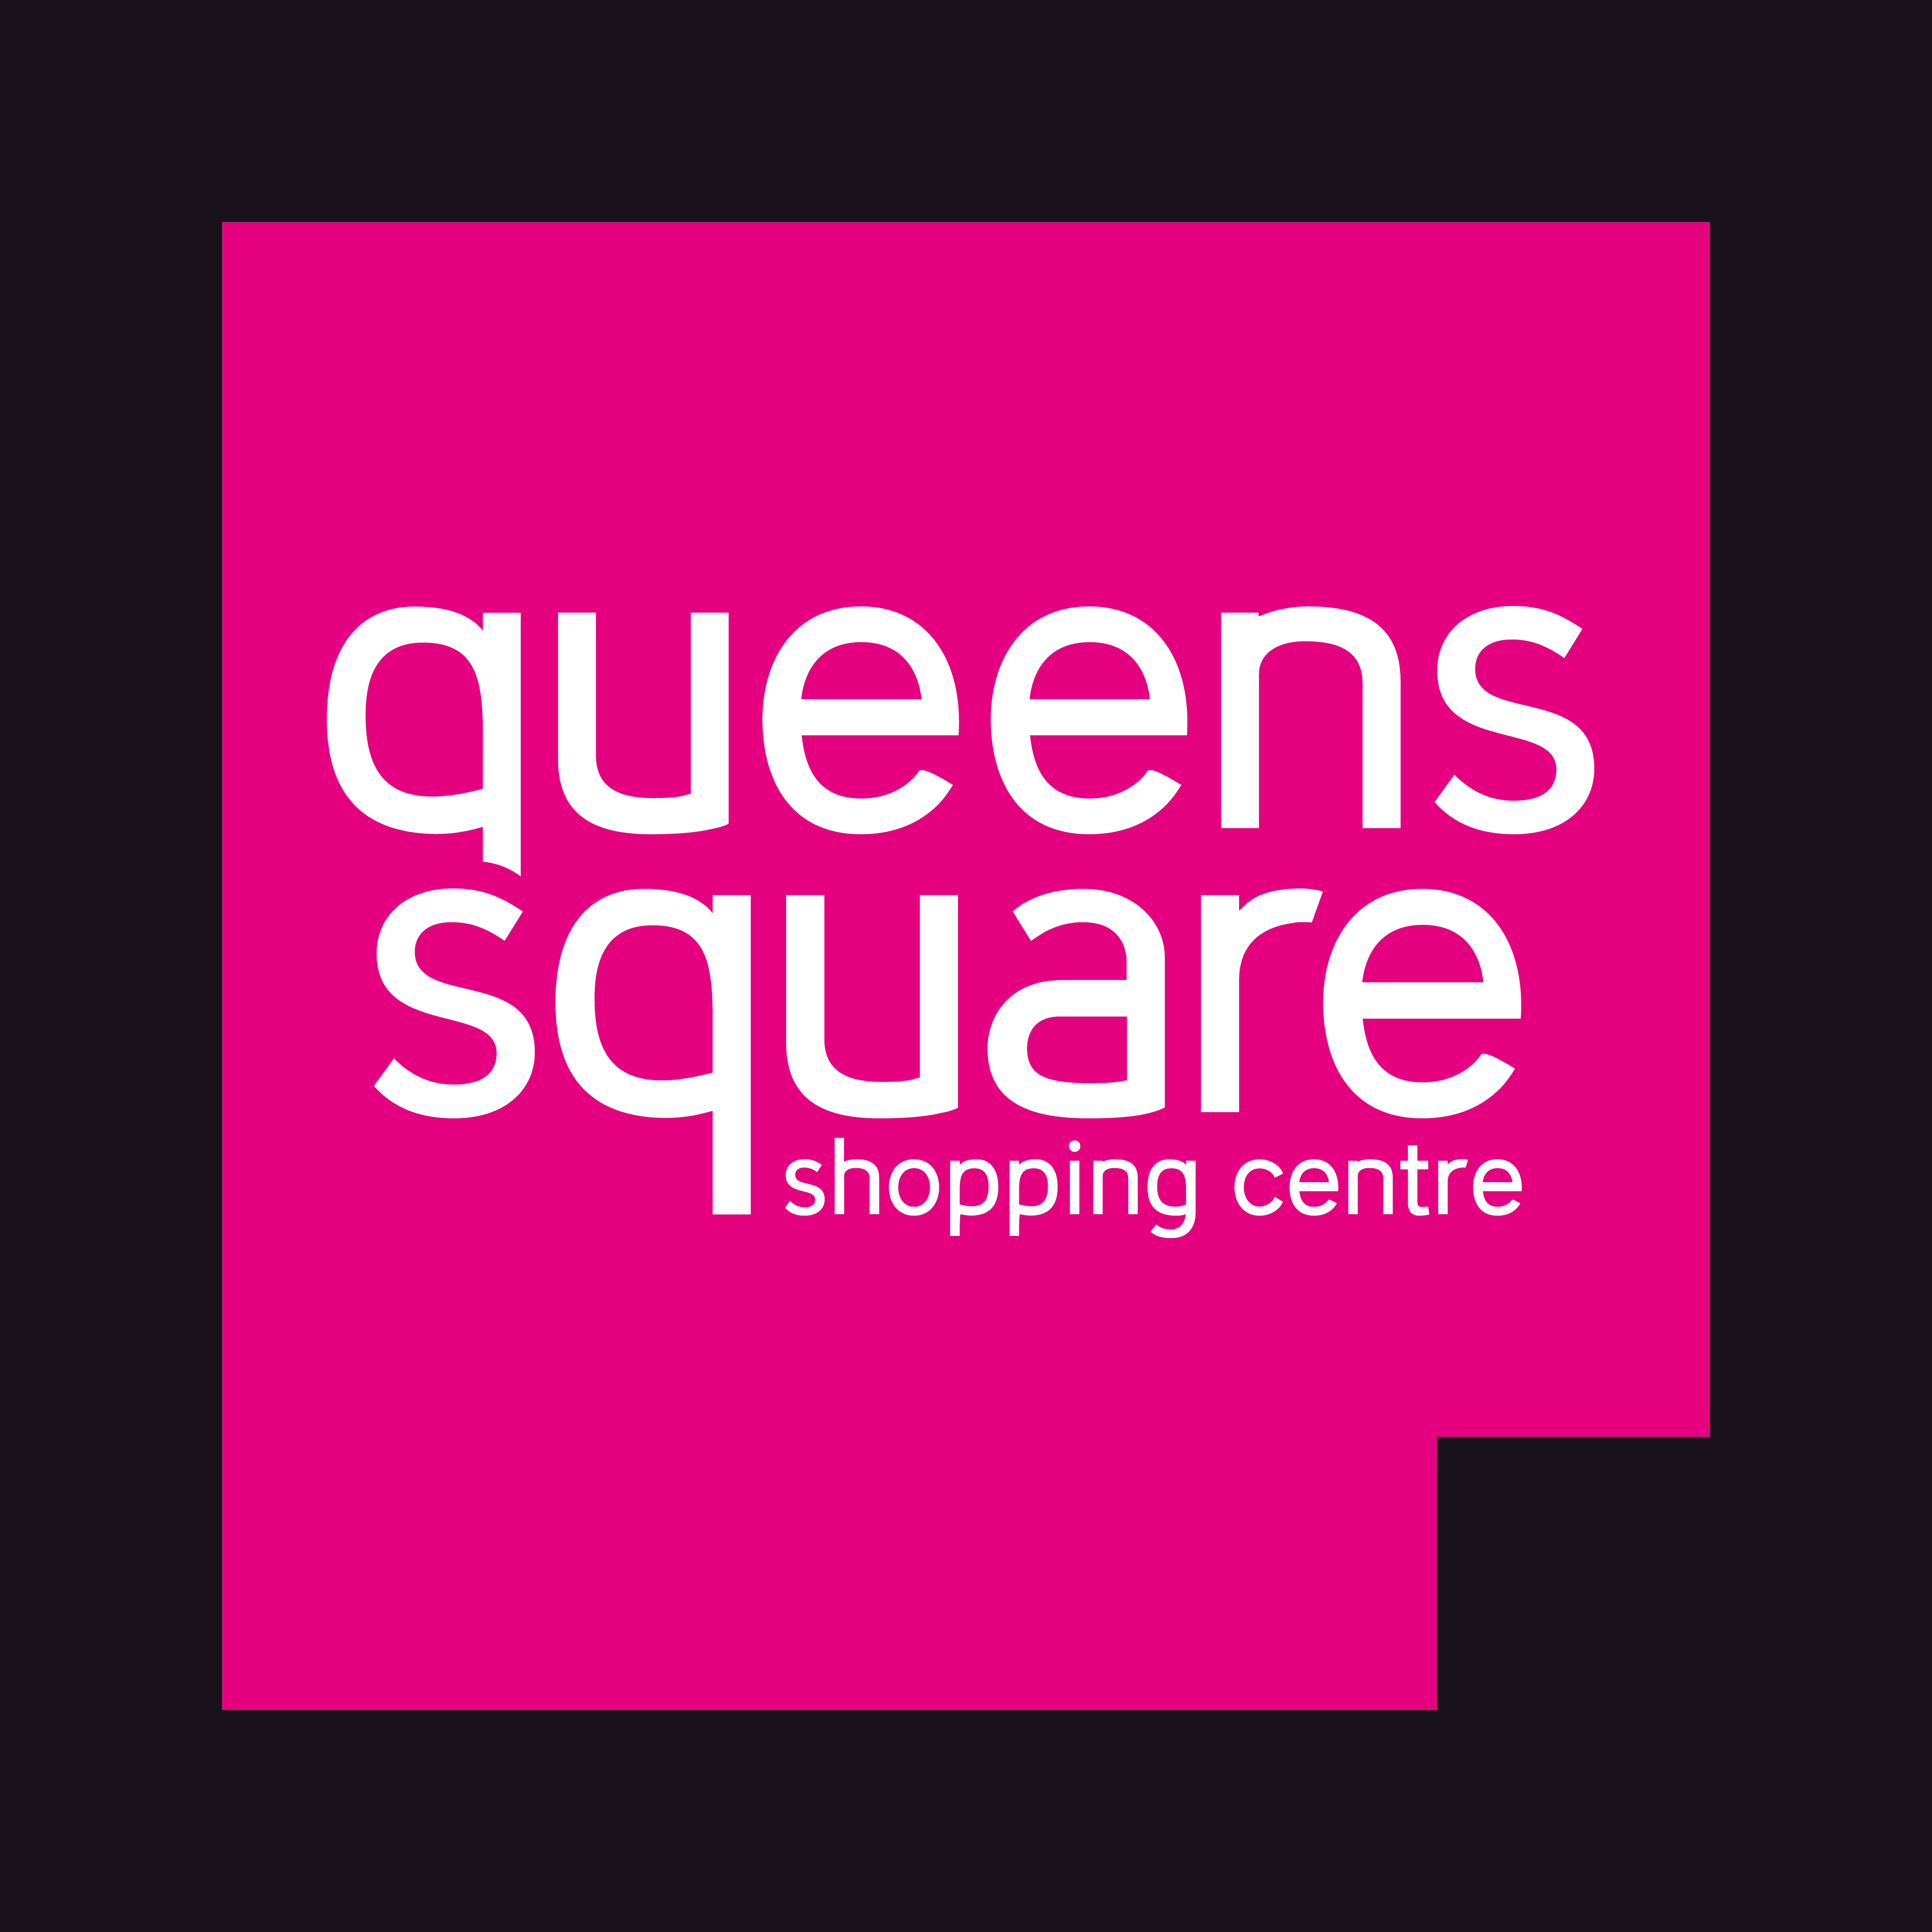 Queens Square Shopping Centre have a new website :)